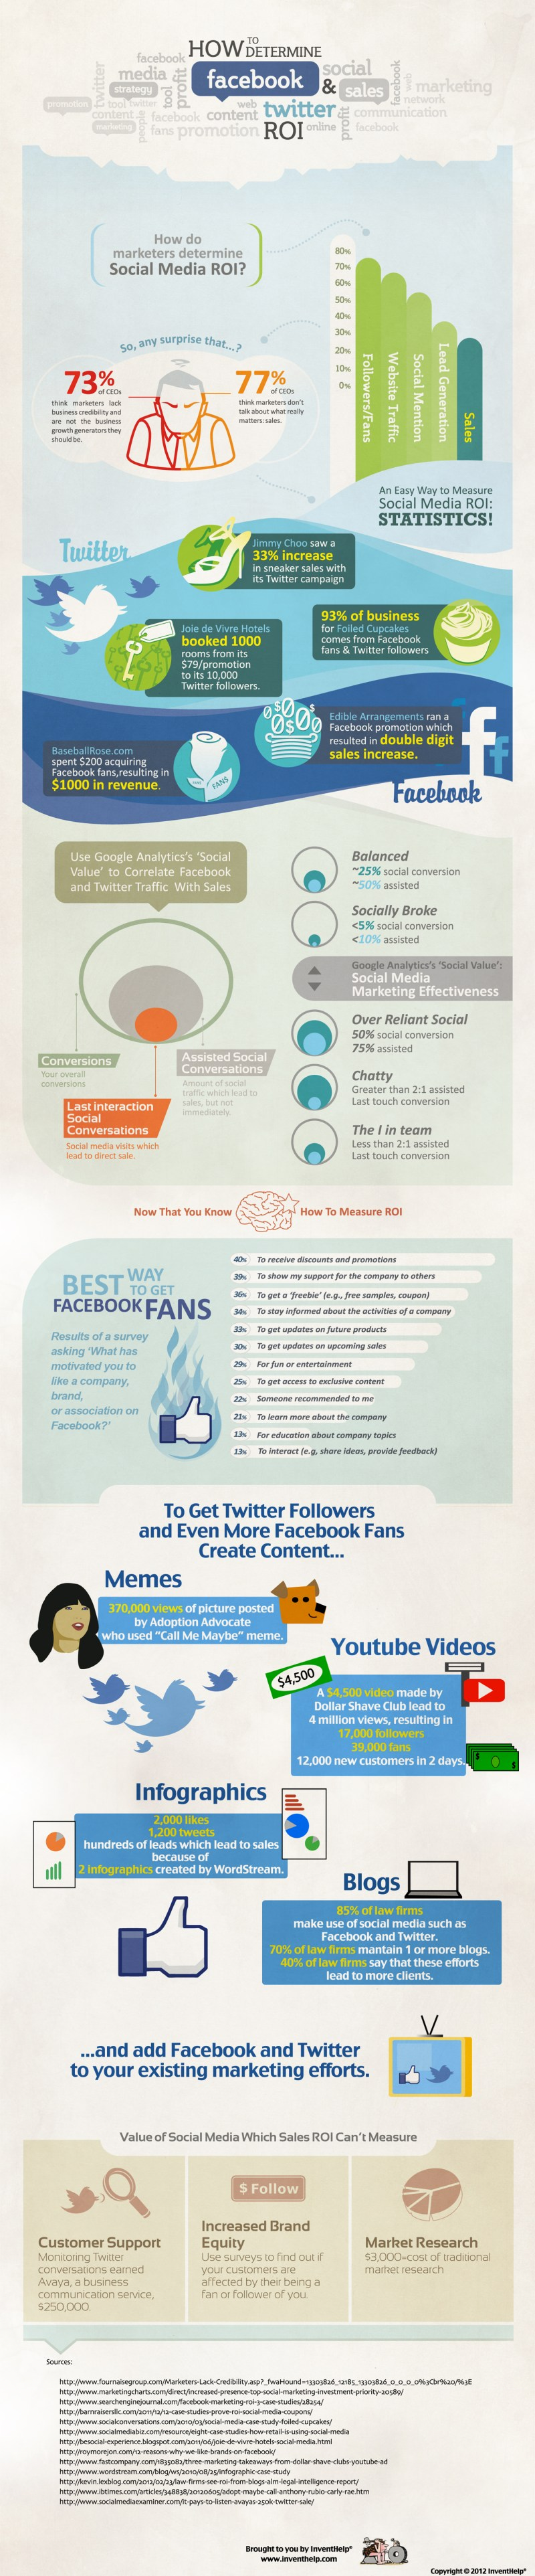 Infographic - Determining The ROI Of Facebook & Twitter